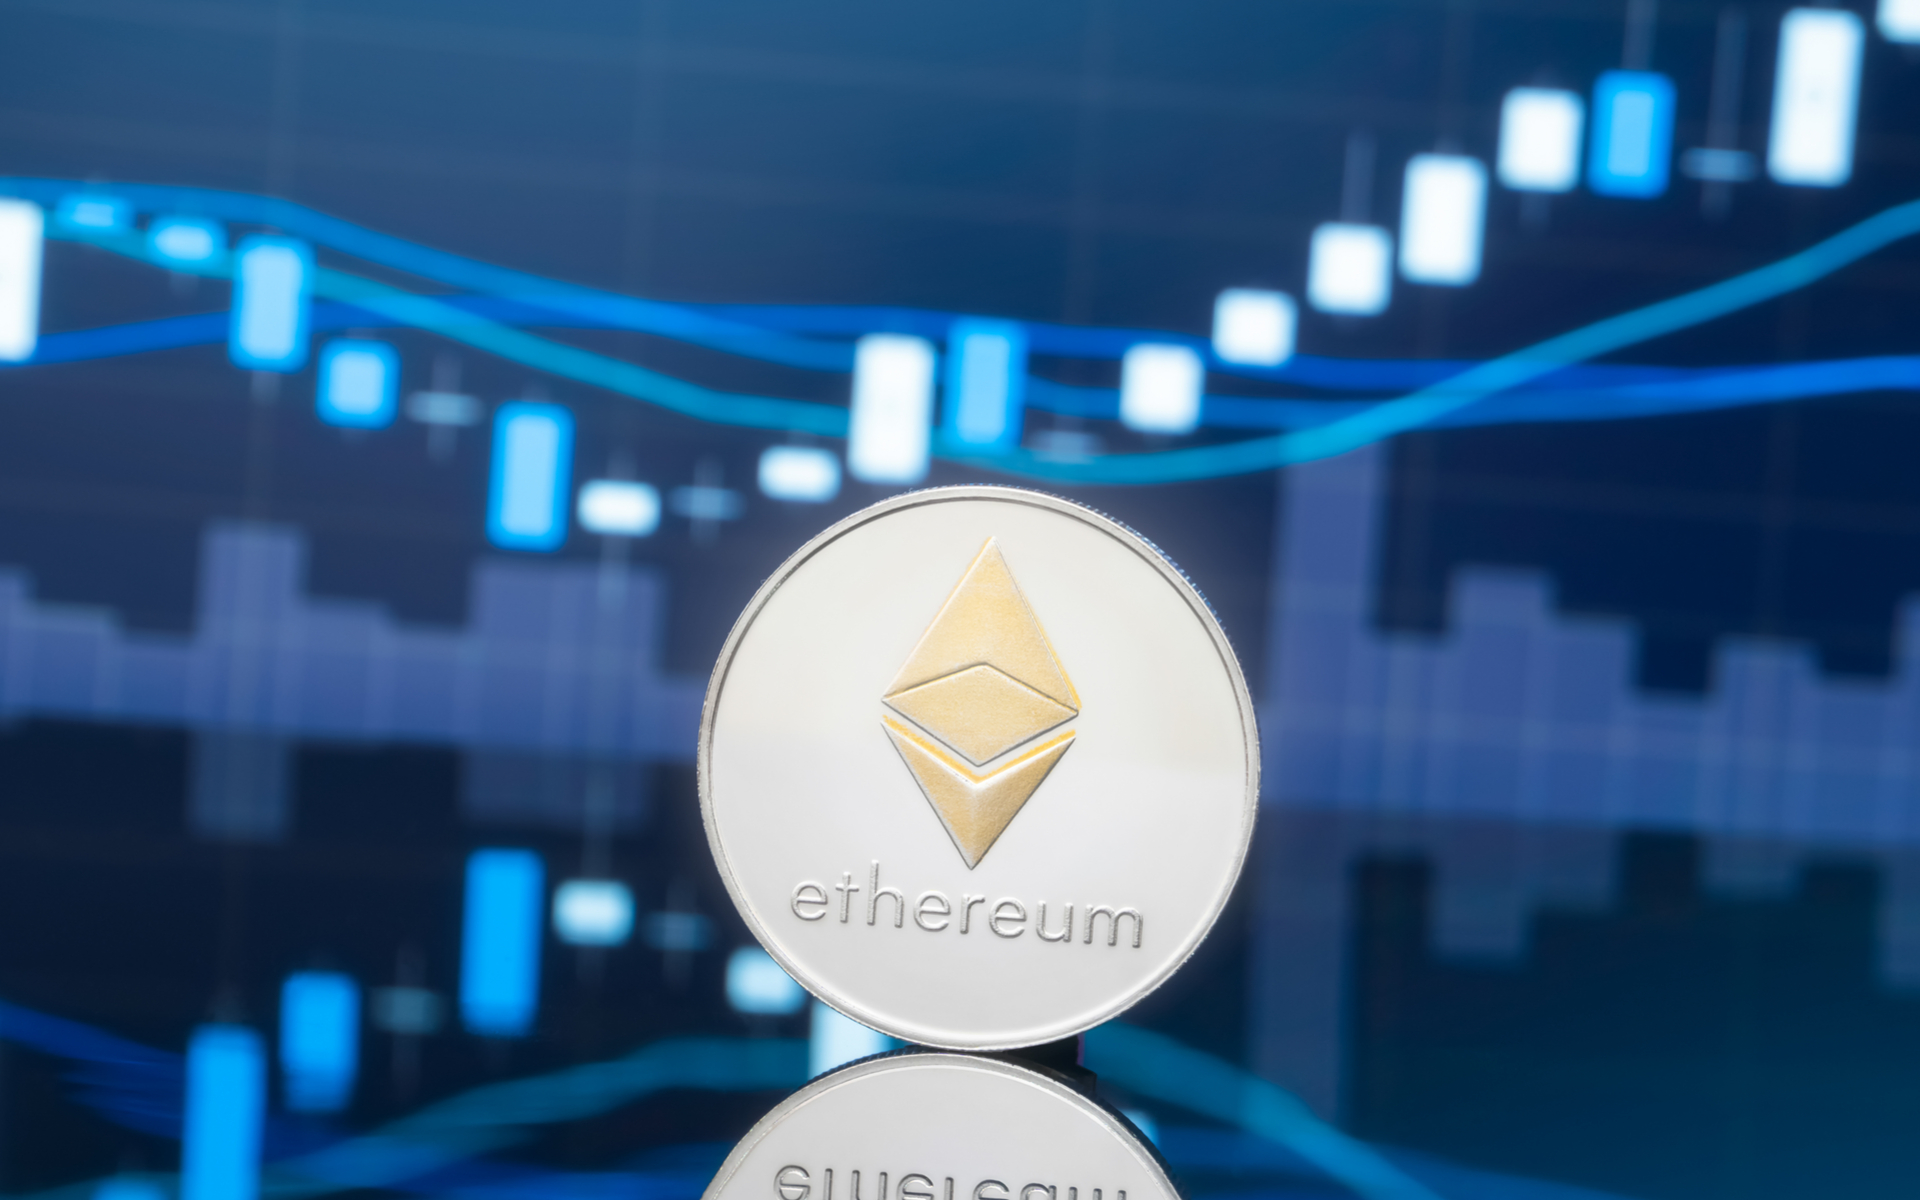 Ethereum Price Analysis: ETH Loses the Daily Uptrend